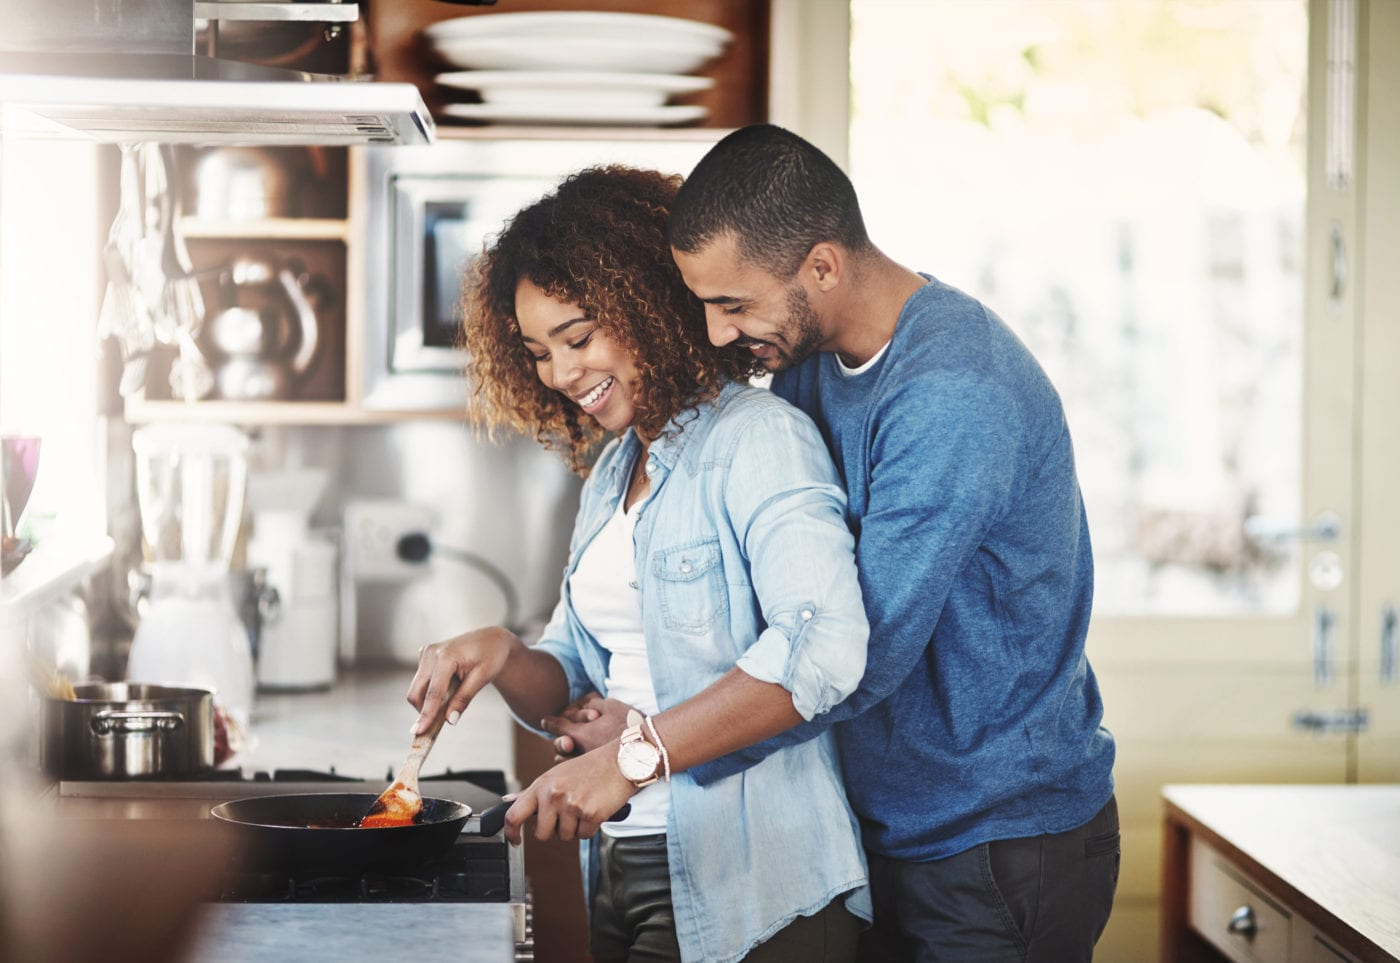 romantic things to do at home for your wife